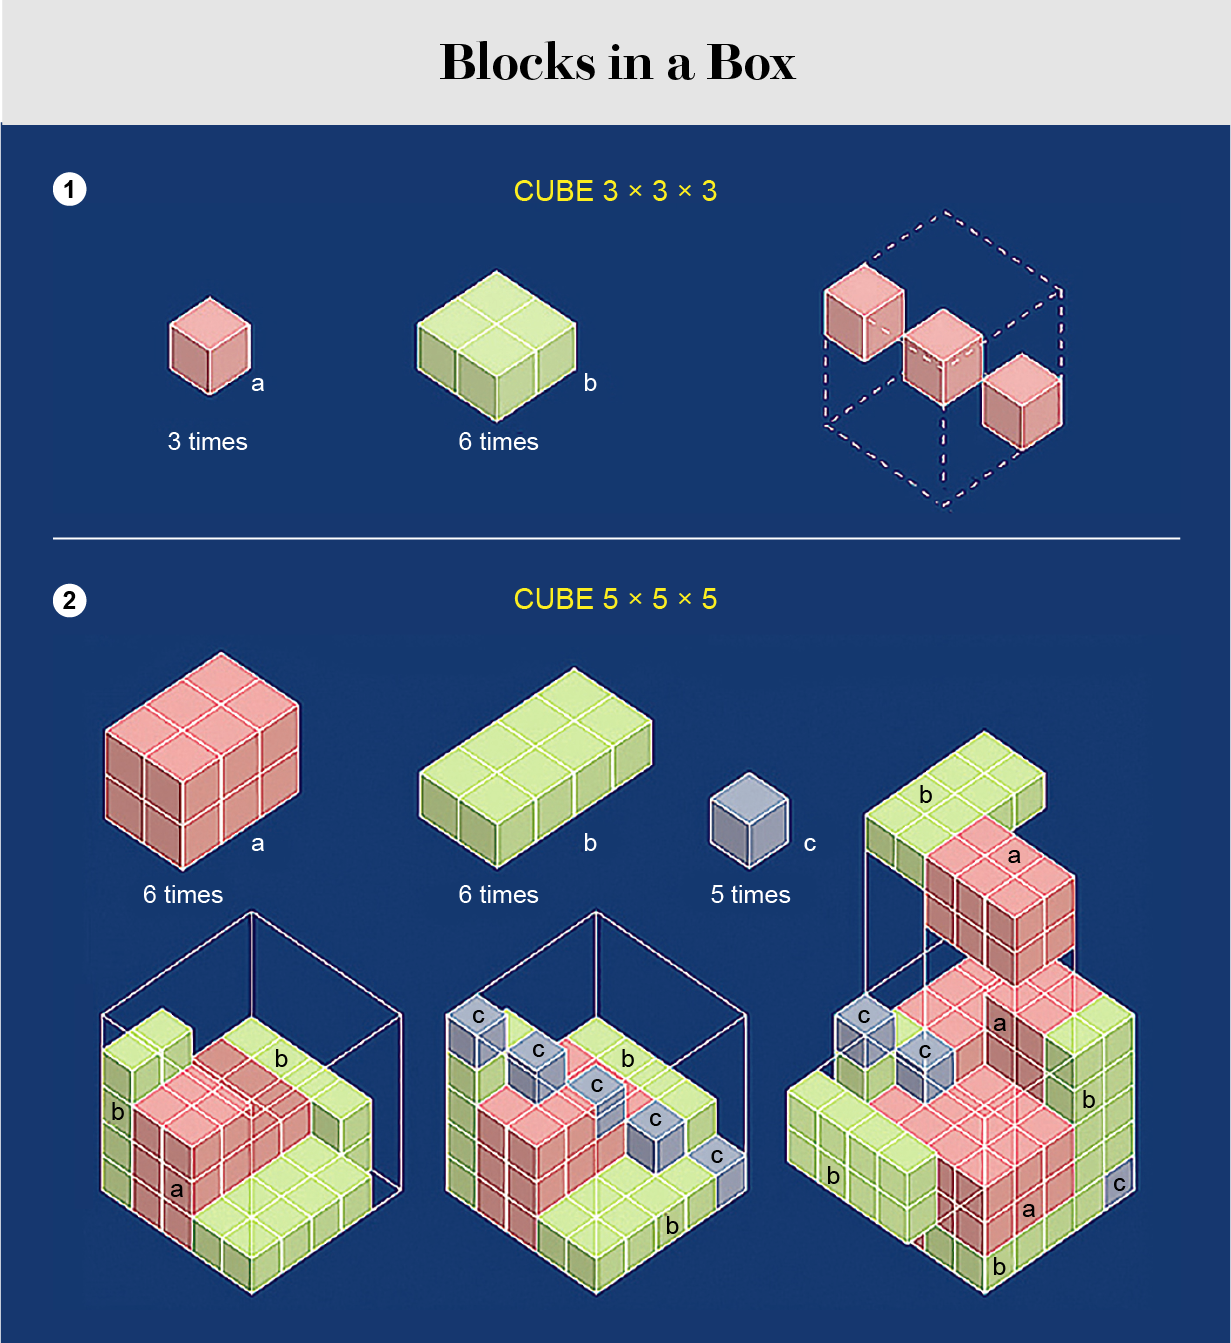 Graphic showing ways to solve a puzzle involving the packing of cubes into a box.